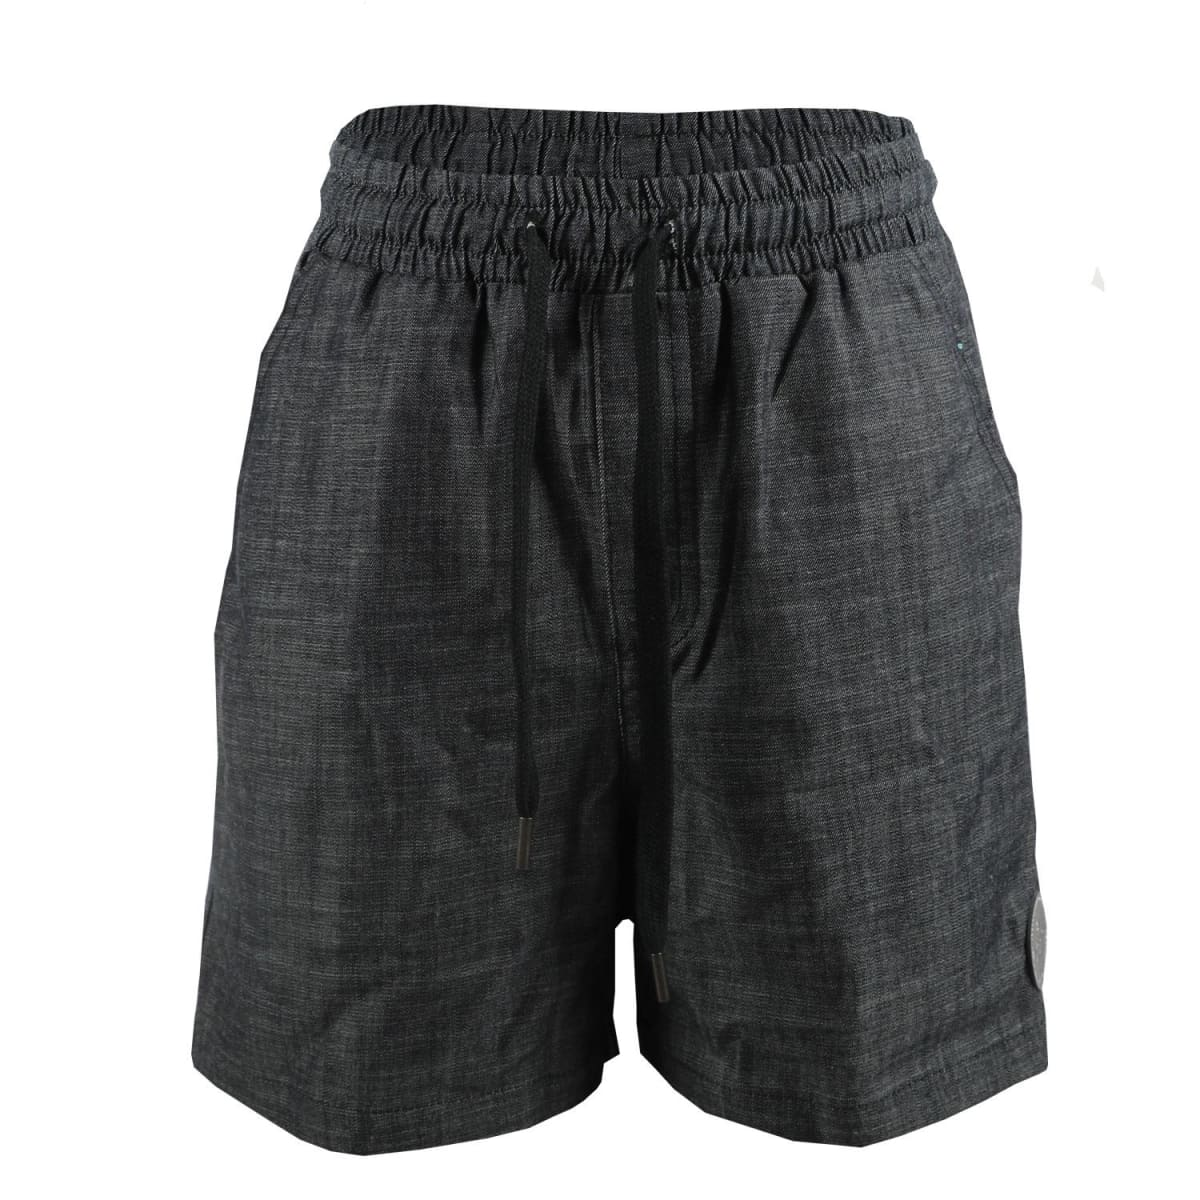 dd6ccf2382 Product Image. Rip Curl Boys Amped Volley Short